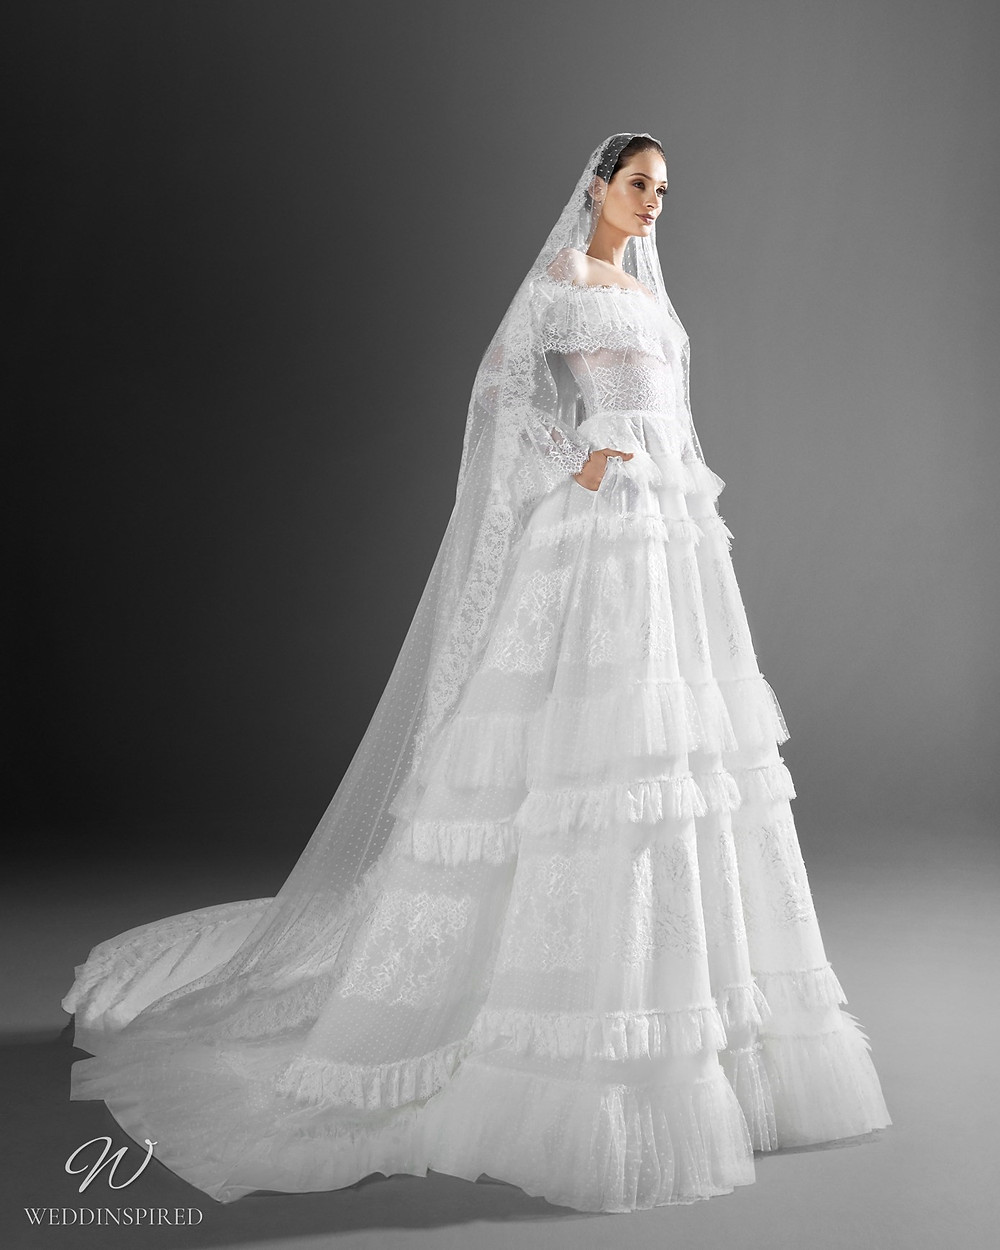 A Zuhair Murad off the shoulder ball gown wedding dress with ruffles, bell sleeves and a veil